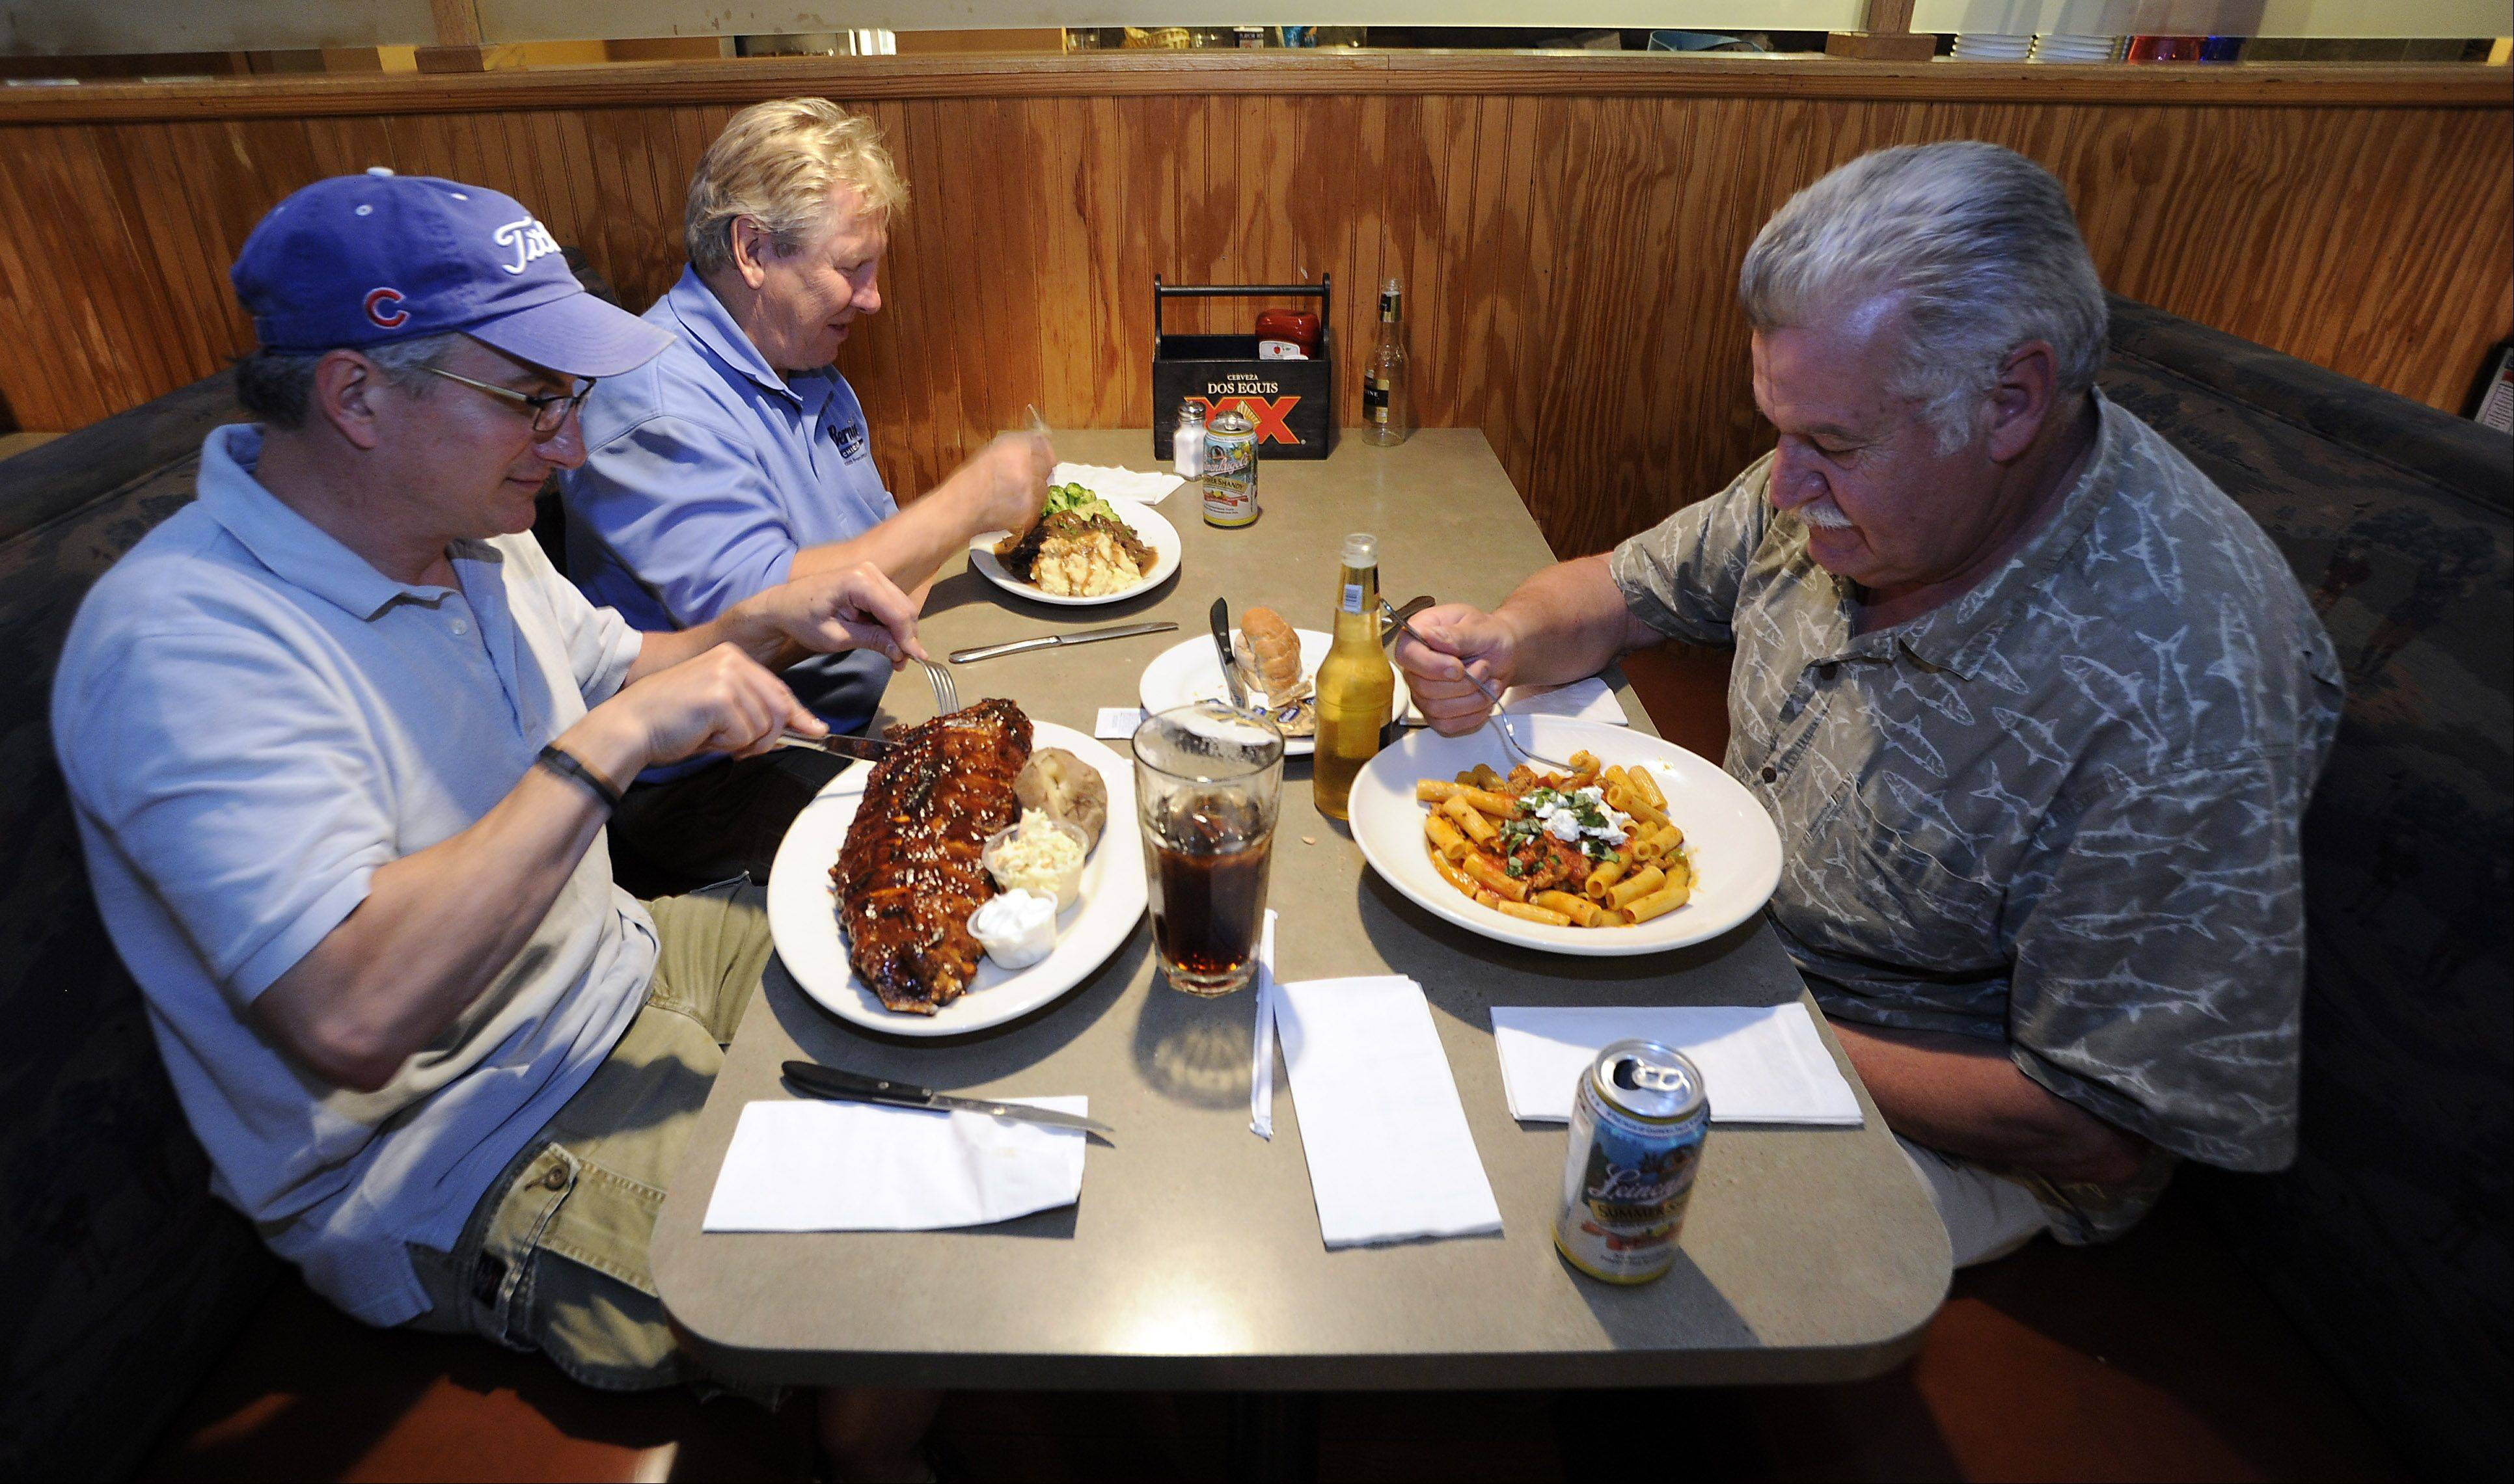 Tom Lehn of Chicago, left, Larry Dodgers of Addison and Emilio Defelipe of Chicago enjoy a meal at Club Casa Cafe in Des Plaines.